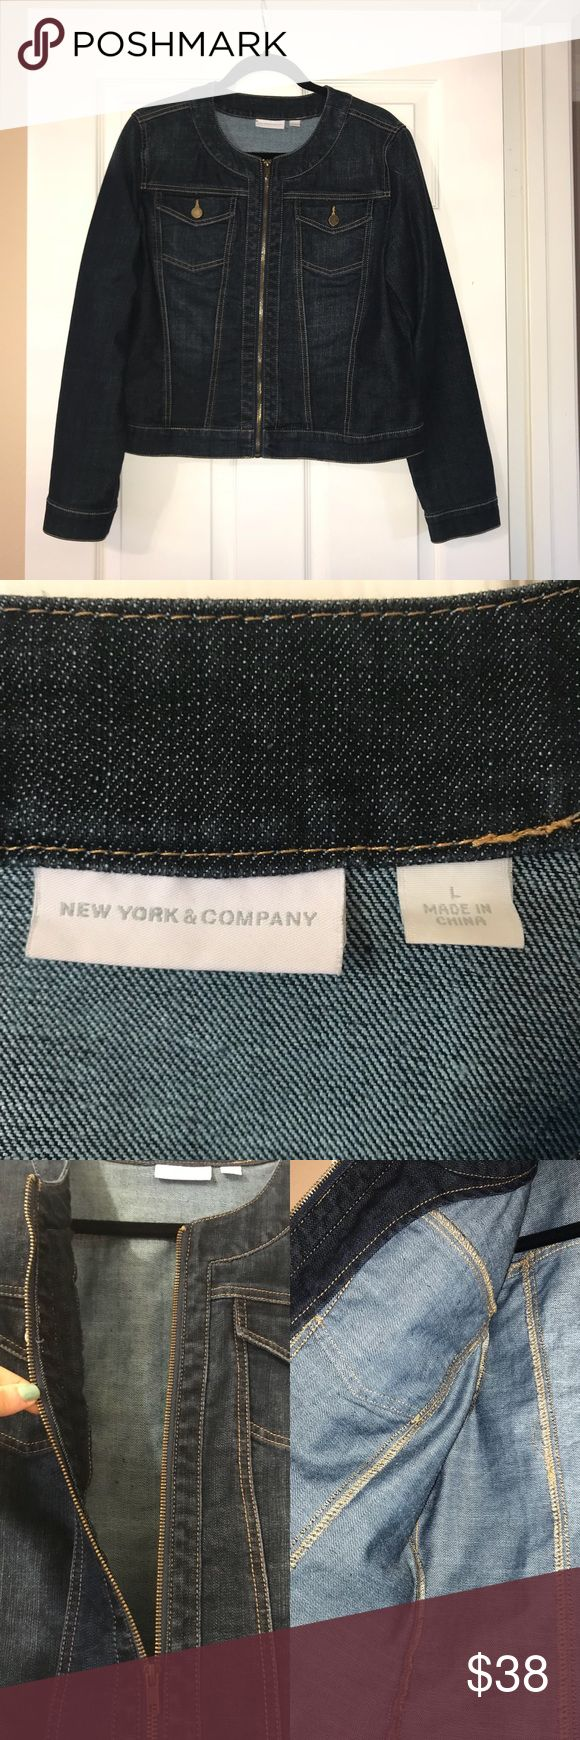 New York & Company Dark Blue Denim Jean Jacket Purchased about 2-3 years ago for around $60. Worm once or twice. Jacket has no signs of wear, no flaws, no defects, no damages, no rips and no holes. Zipper works perfectly fine.  Sizing runs true to size. My mom wore this, she's 5'9, weighs about 160 pounds and has 36D breasts and it fit her perfectly.   NO TRADES!! NO MODELING!! PRICE IS FAIR, FIRM & FINAL!! ALL OFFERS WILL BE DECLINED!! New York & Company Jackets & Coats Jean Jackets